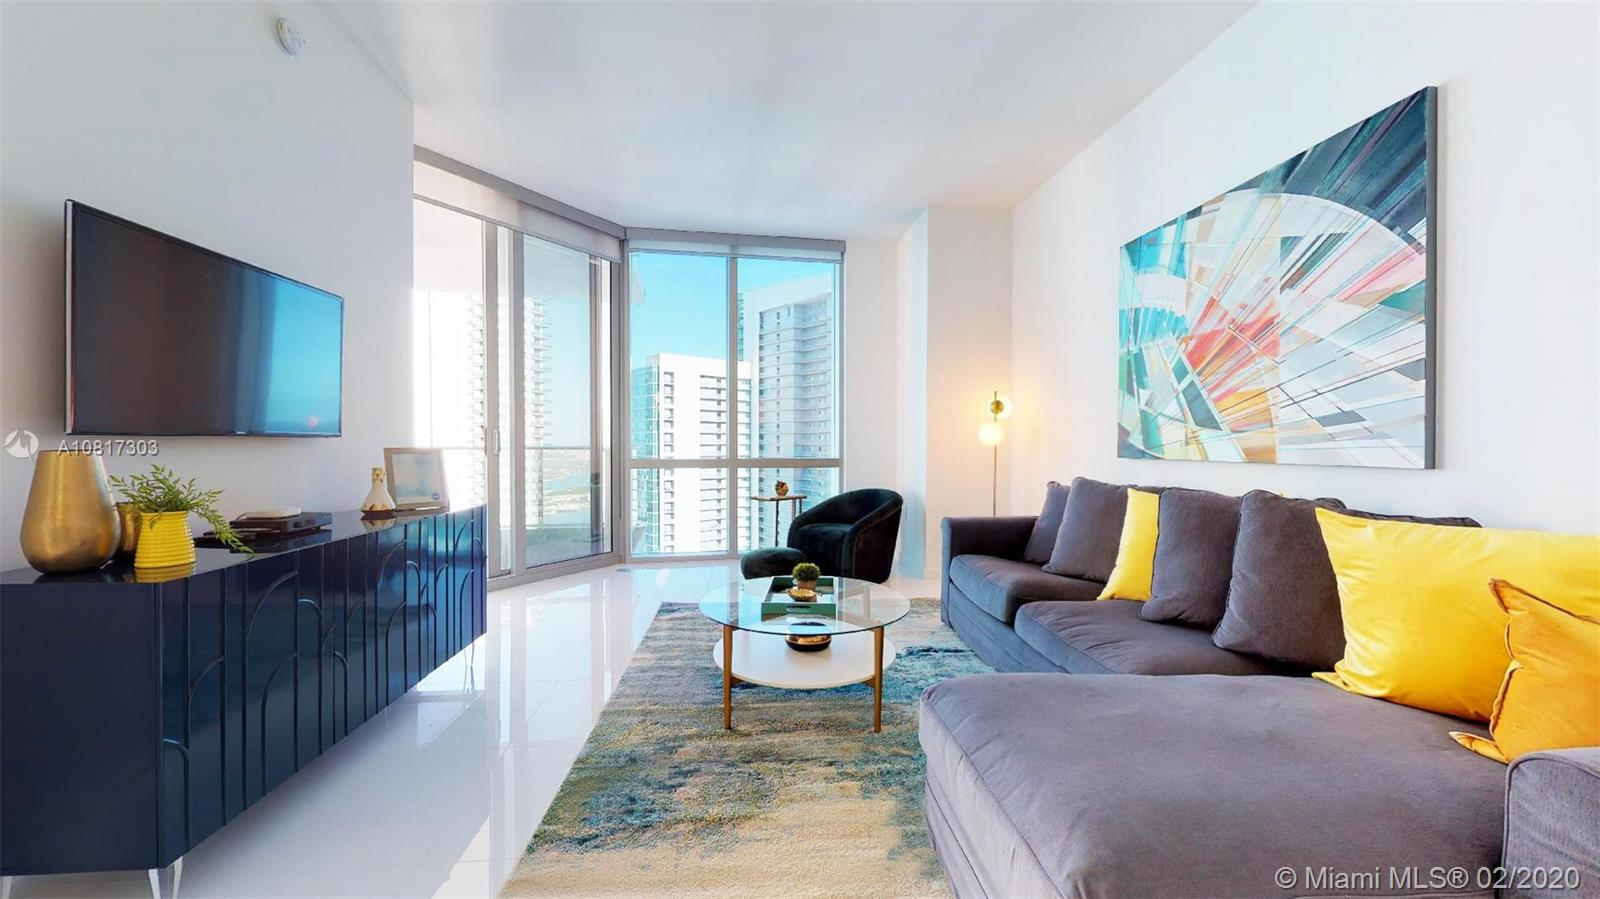 851 NE 1st ave #4105 For Sale A10817303, FL